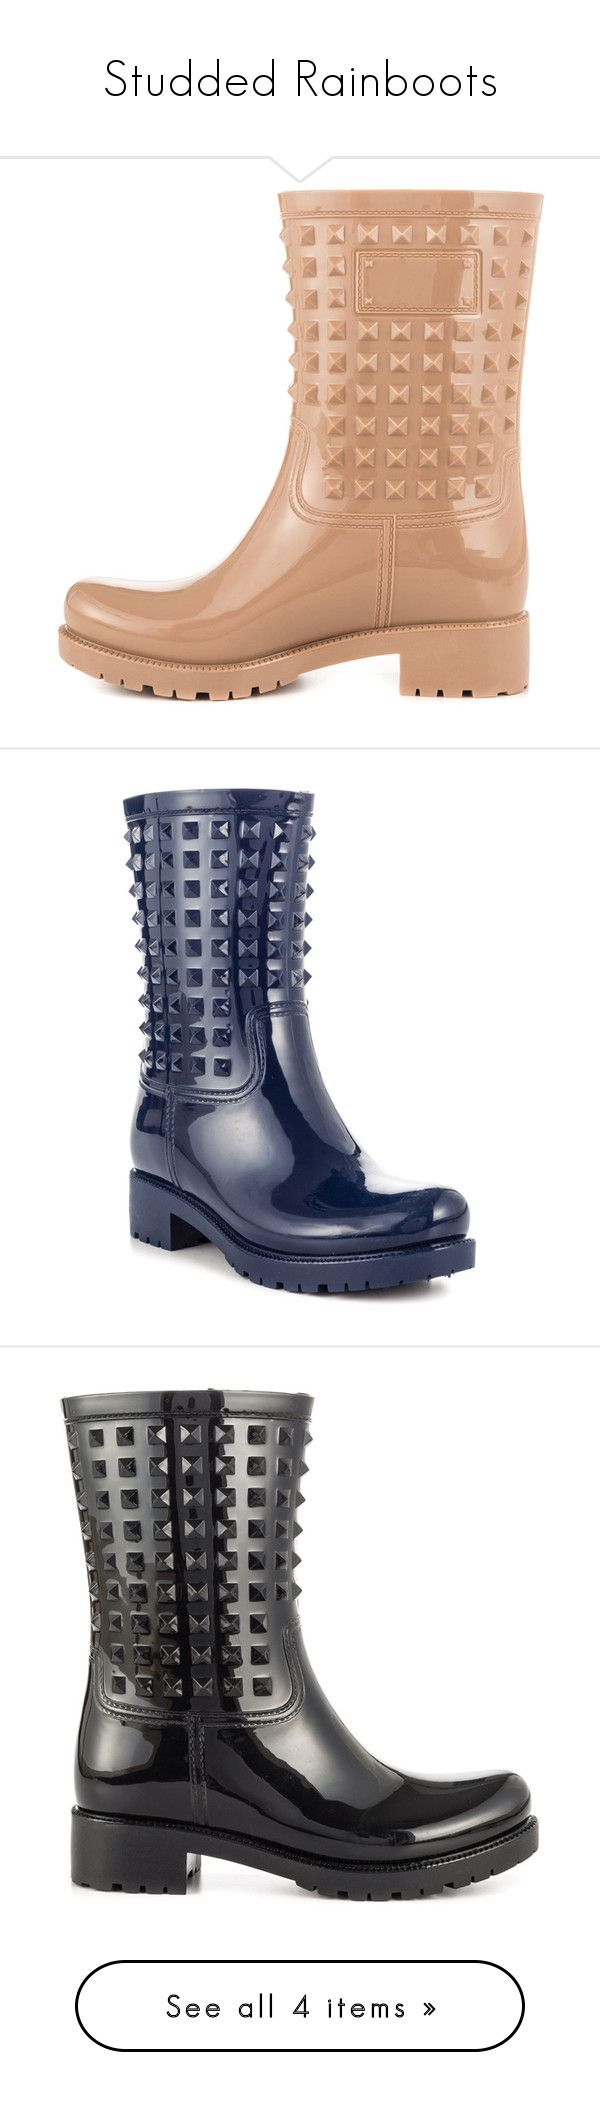 """Studded Rainboots"" by heelsdotcom ❤ liked on Polyvore featuring shoes, boots, mid-calf boots, wellies boots, mid-heel boots, synthetic boots, calf length boots, wellington boots, fake boots and blue boots"